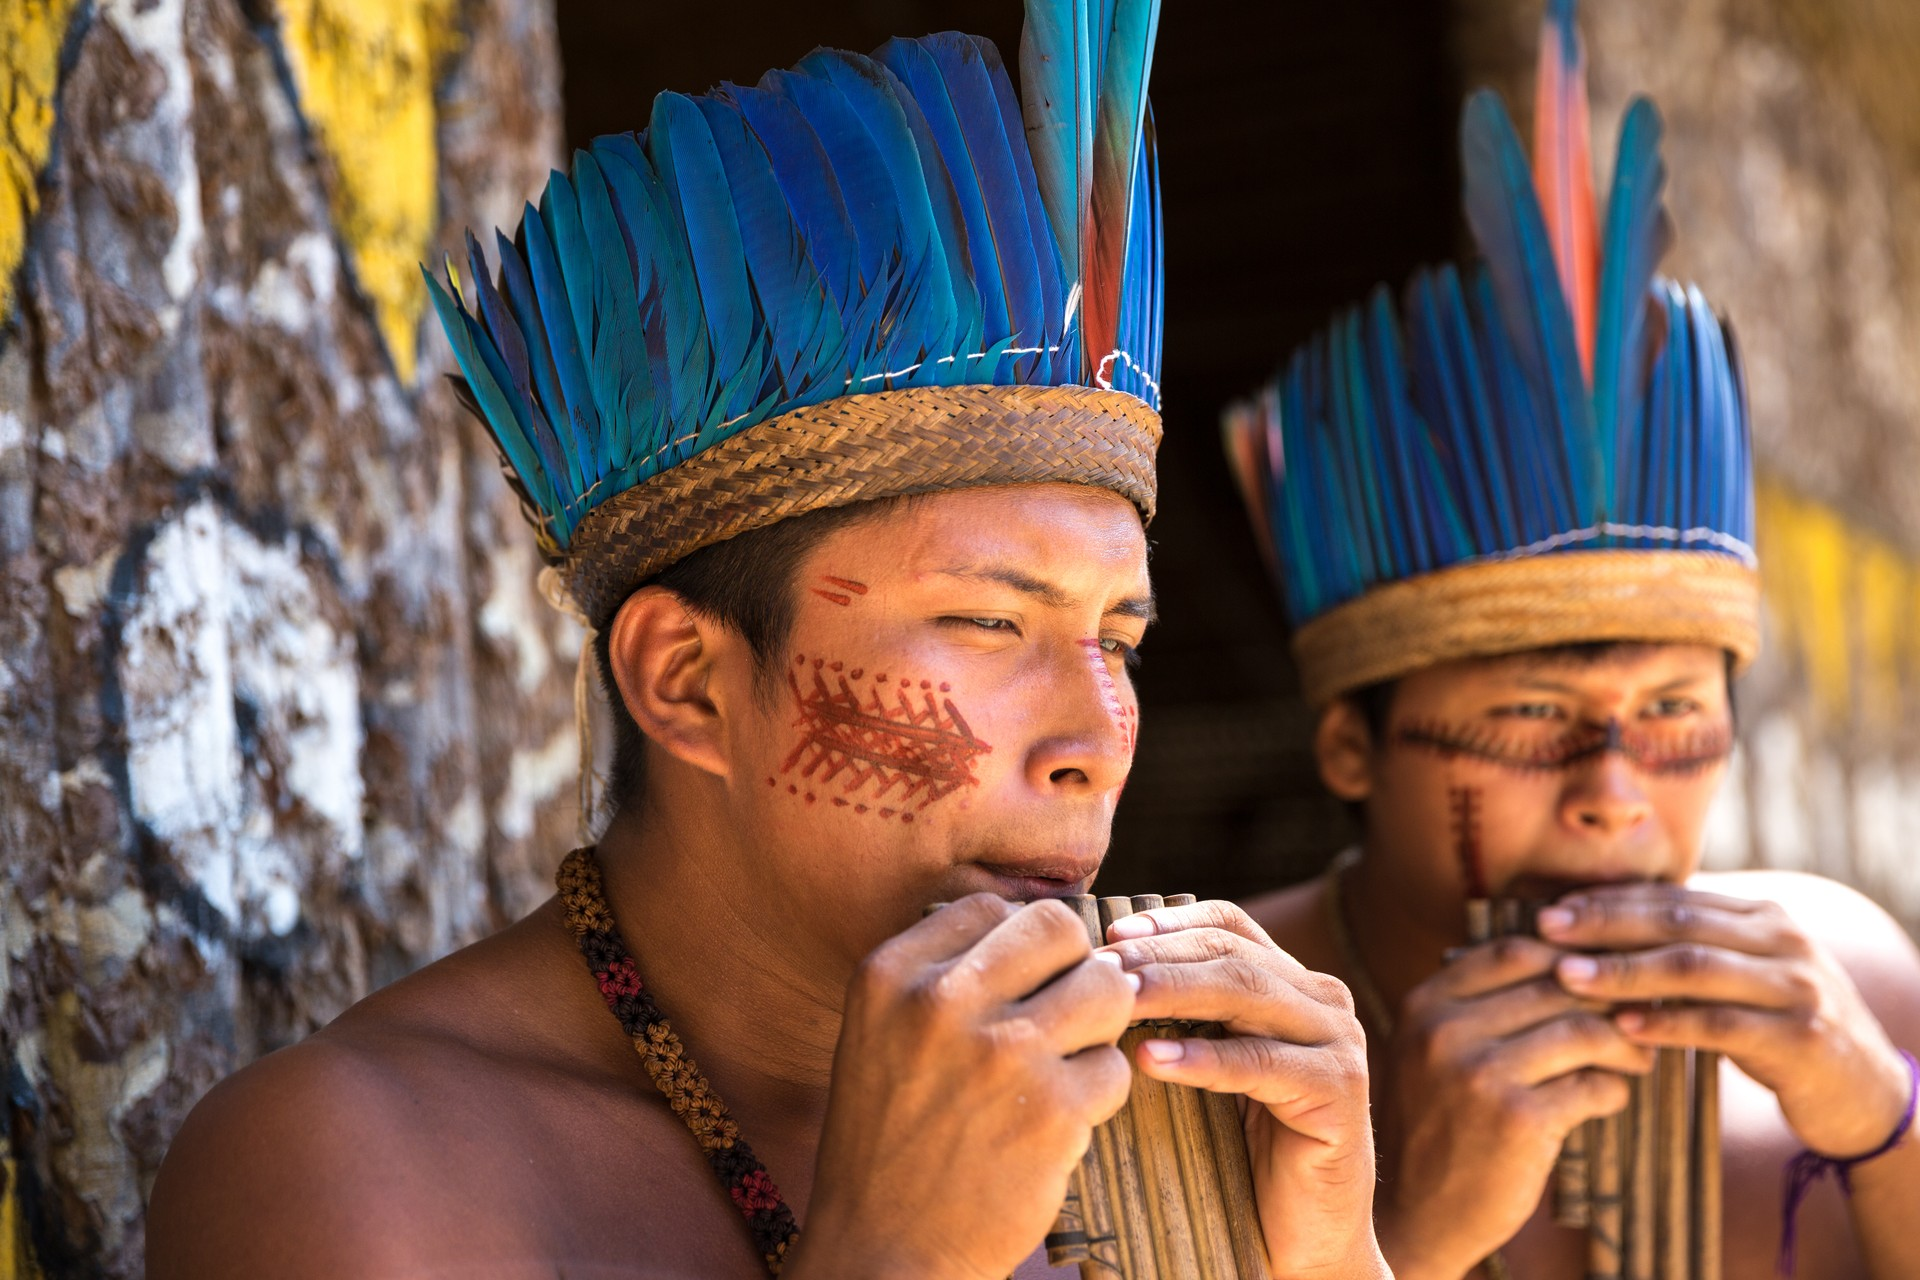 Two indigenous men in the Amazon rainforest, Brazil